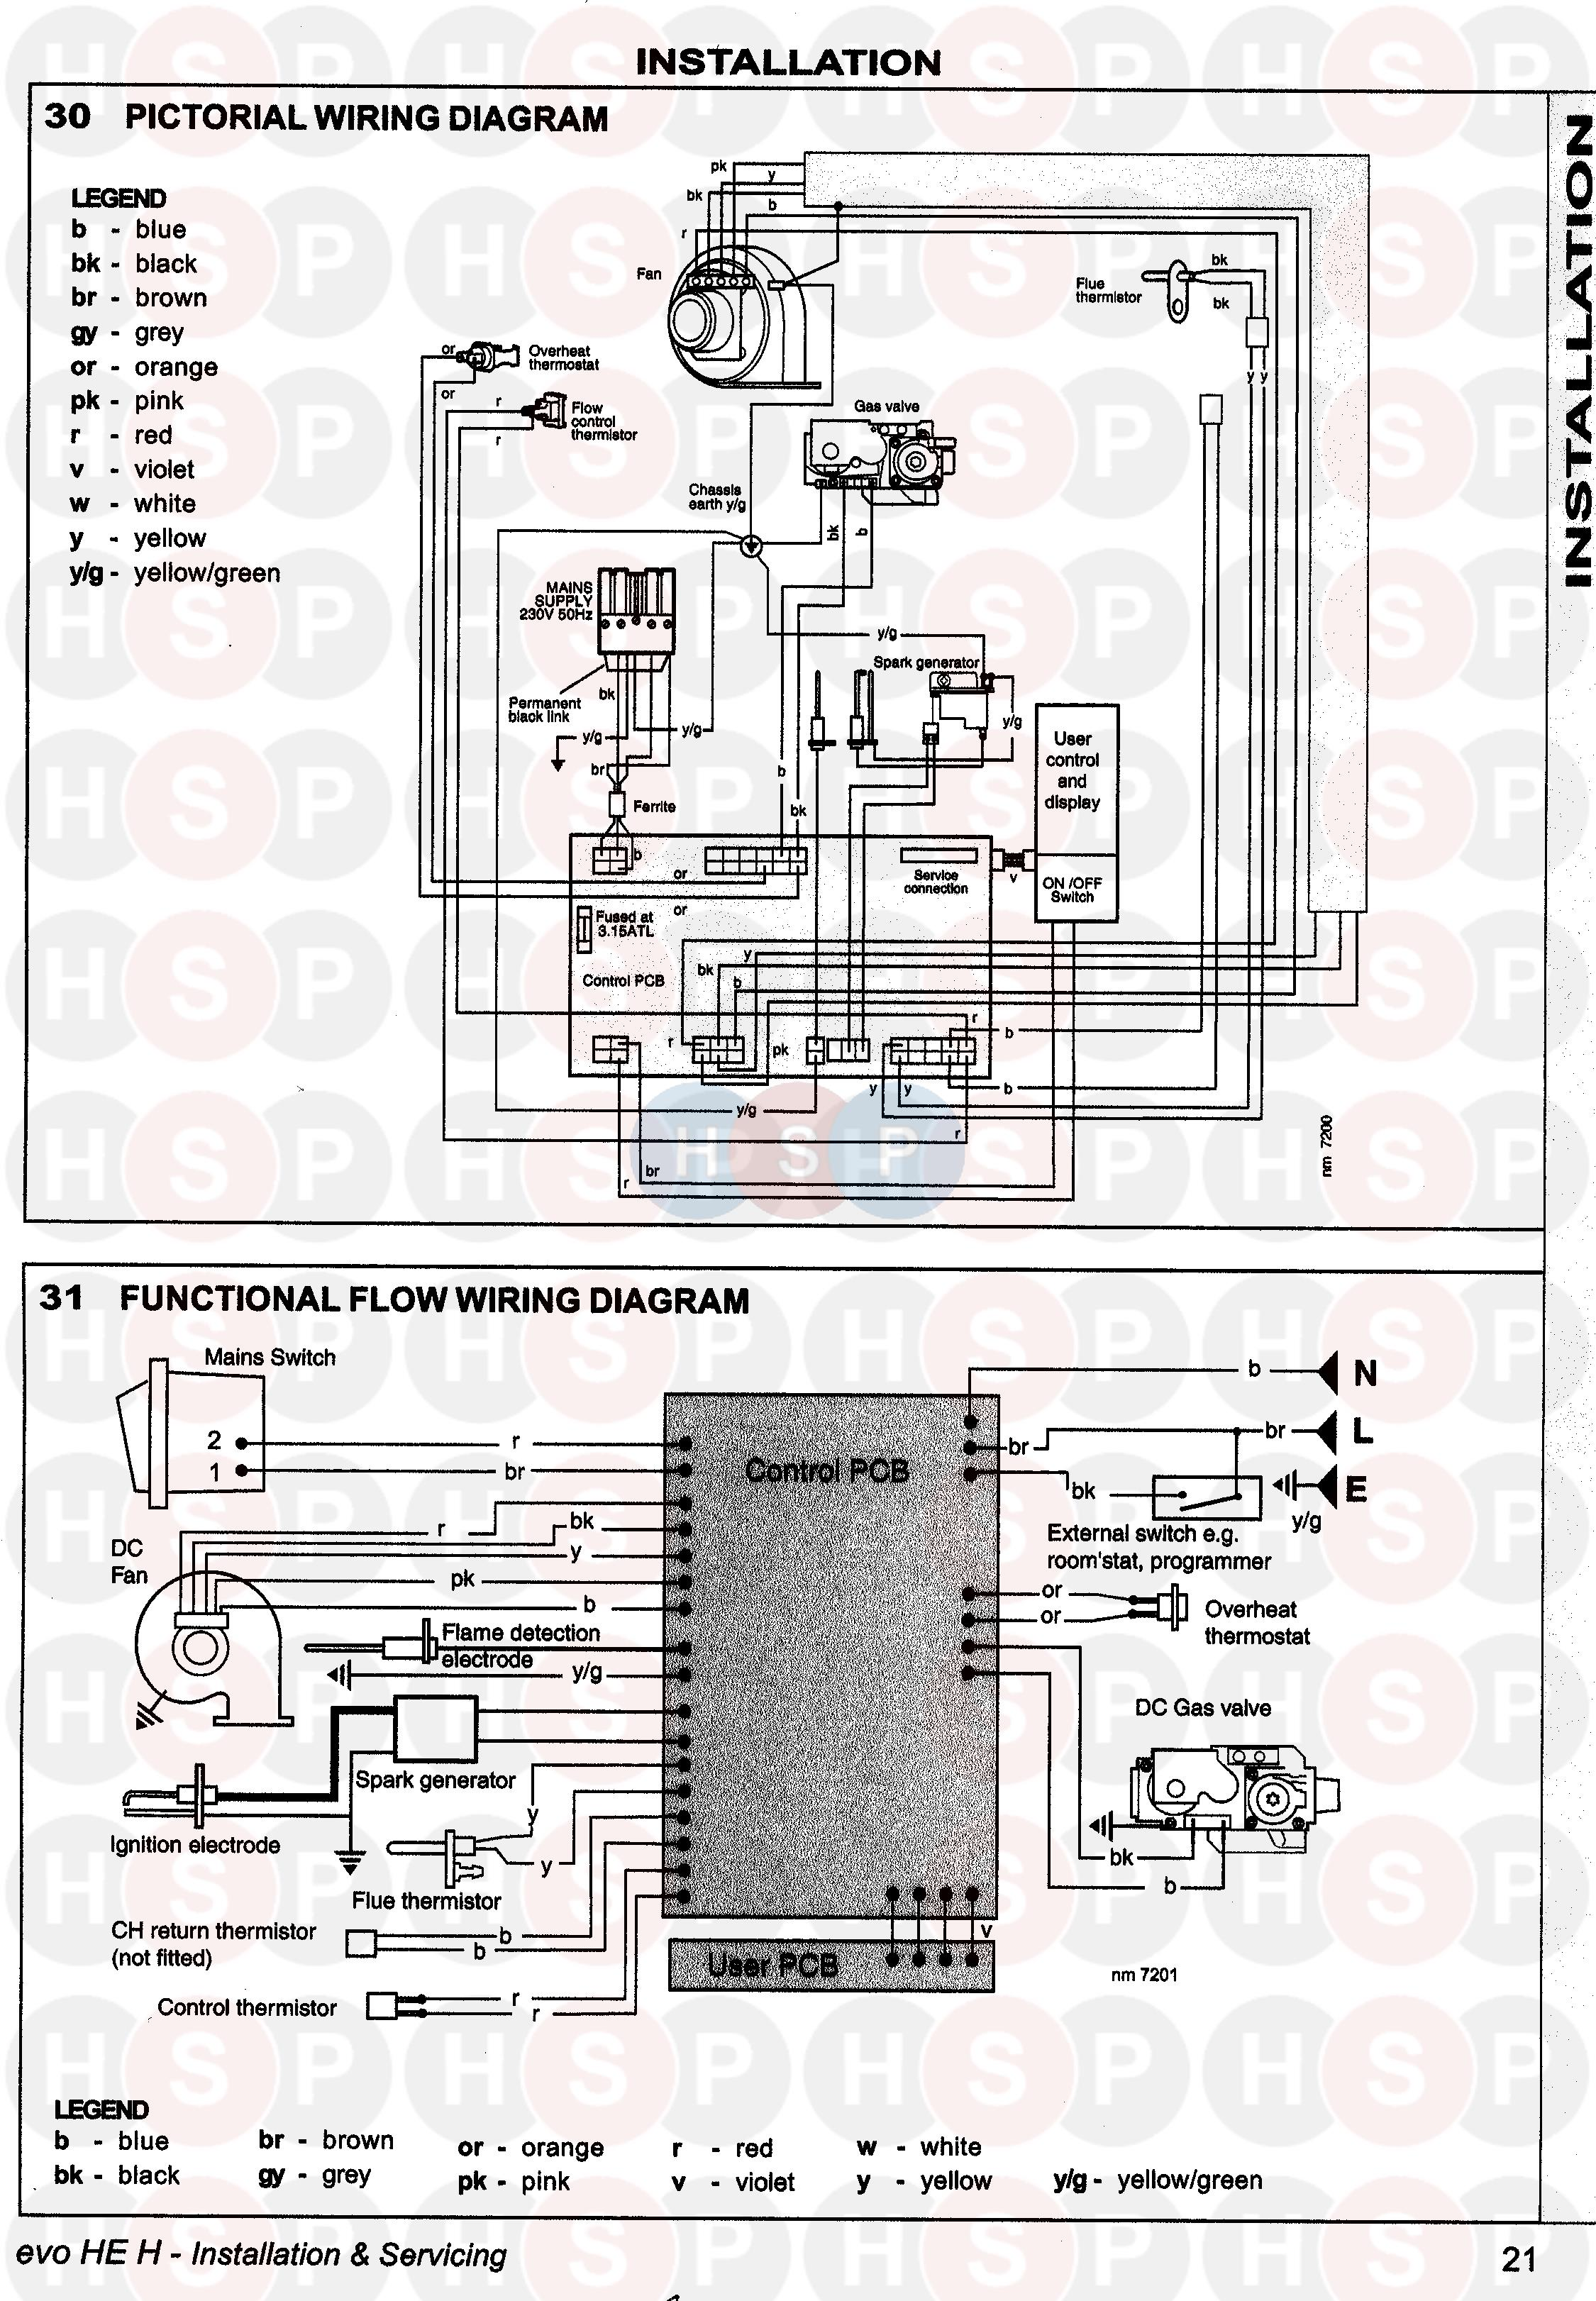 Beautiful Evo Wiring Diagram Photos - Electrical and Wiring Diagram ...